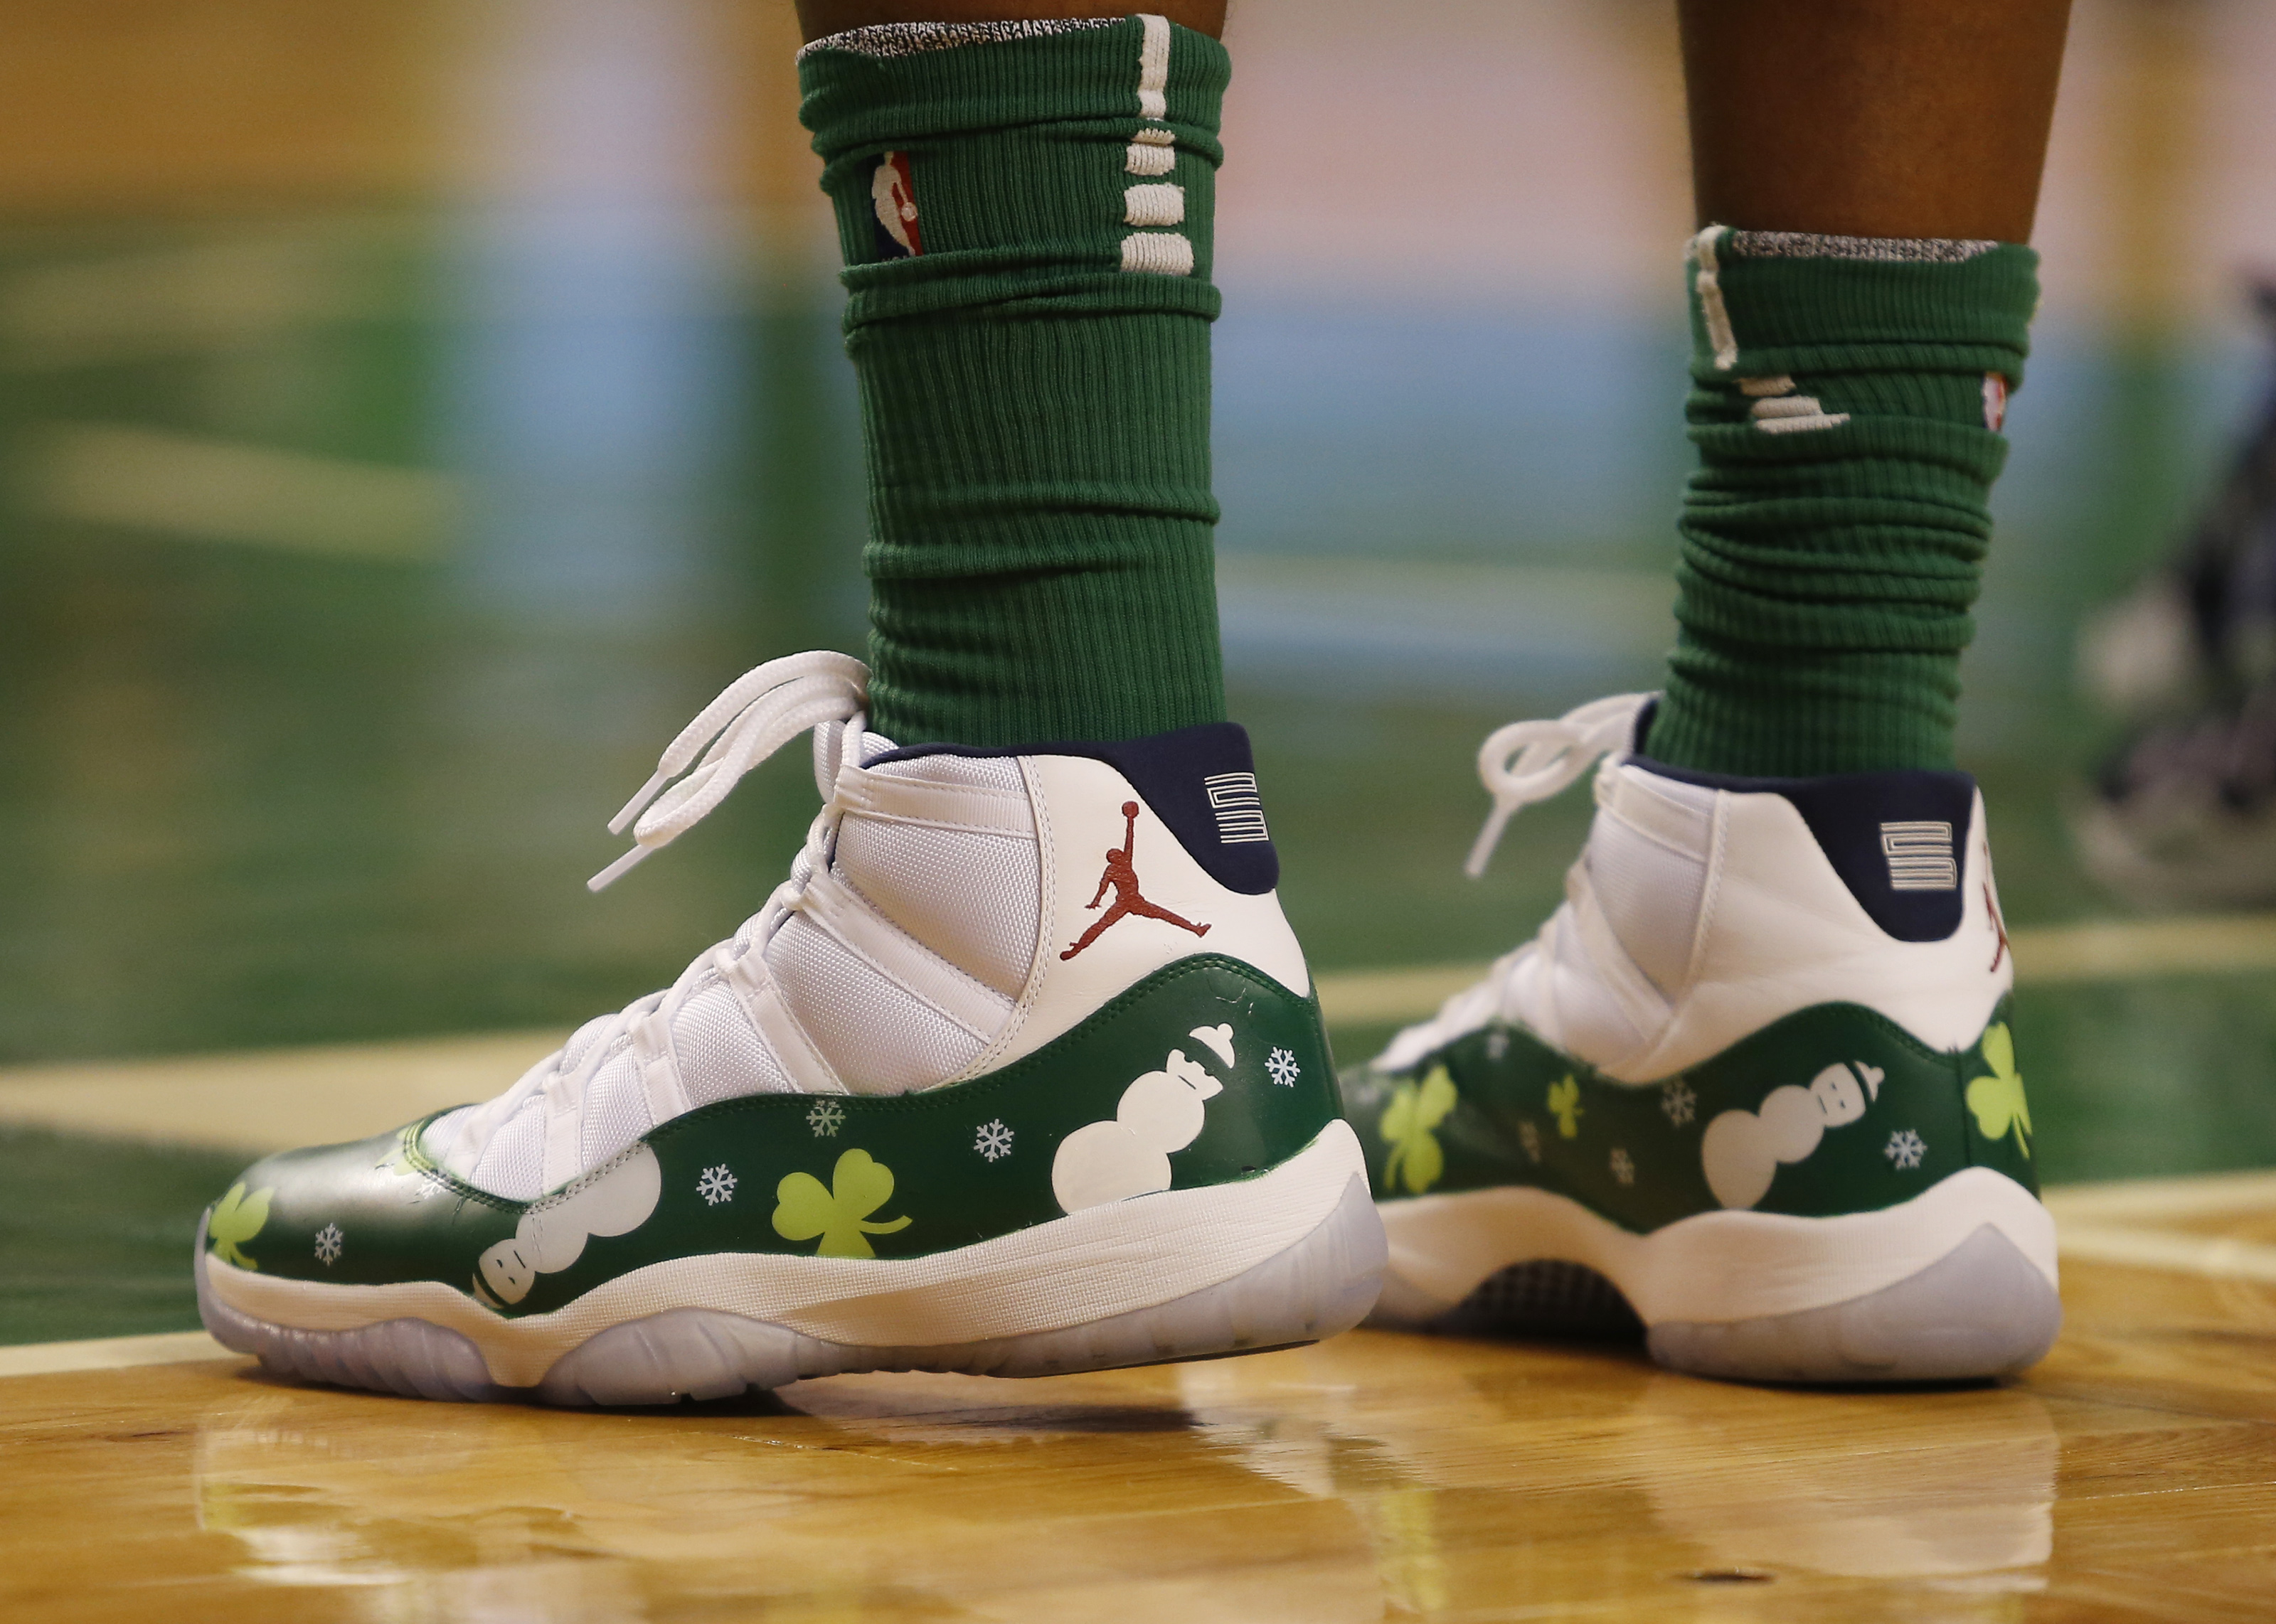 The top 50 sneakers worn on the past 20 NBA Christmas Days